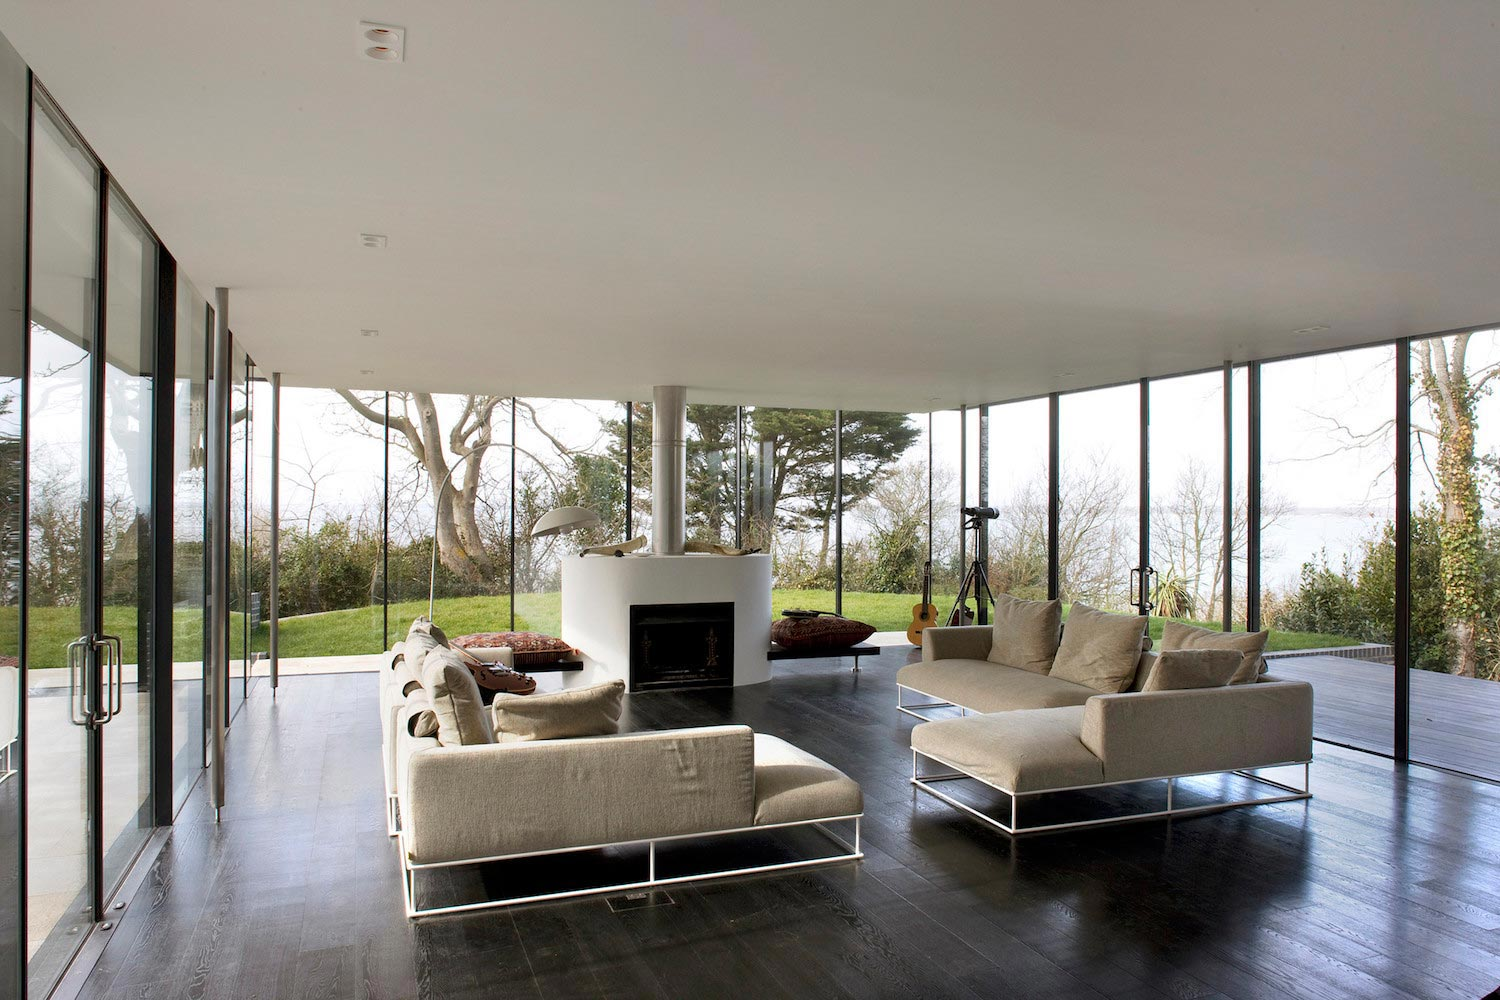 Living Room Extension Compact 1960s Bungalow Gets A Renovation And Extension With A